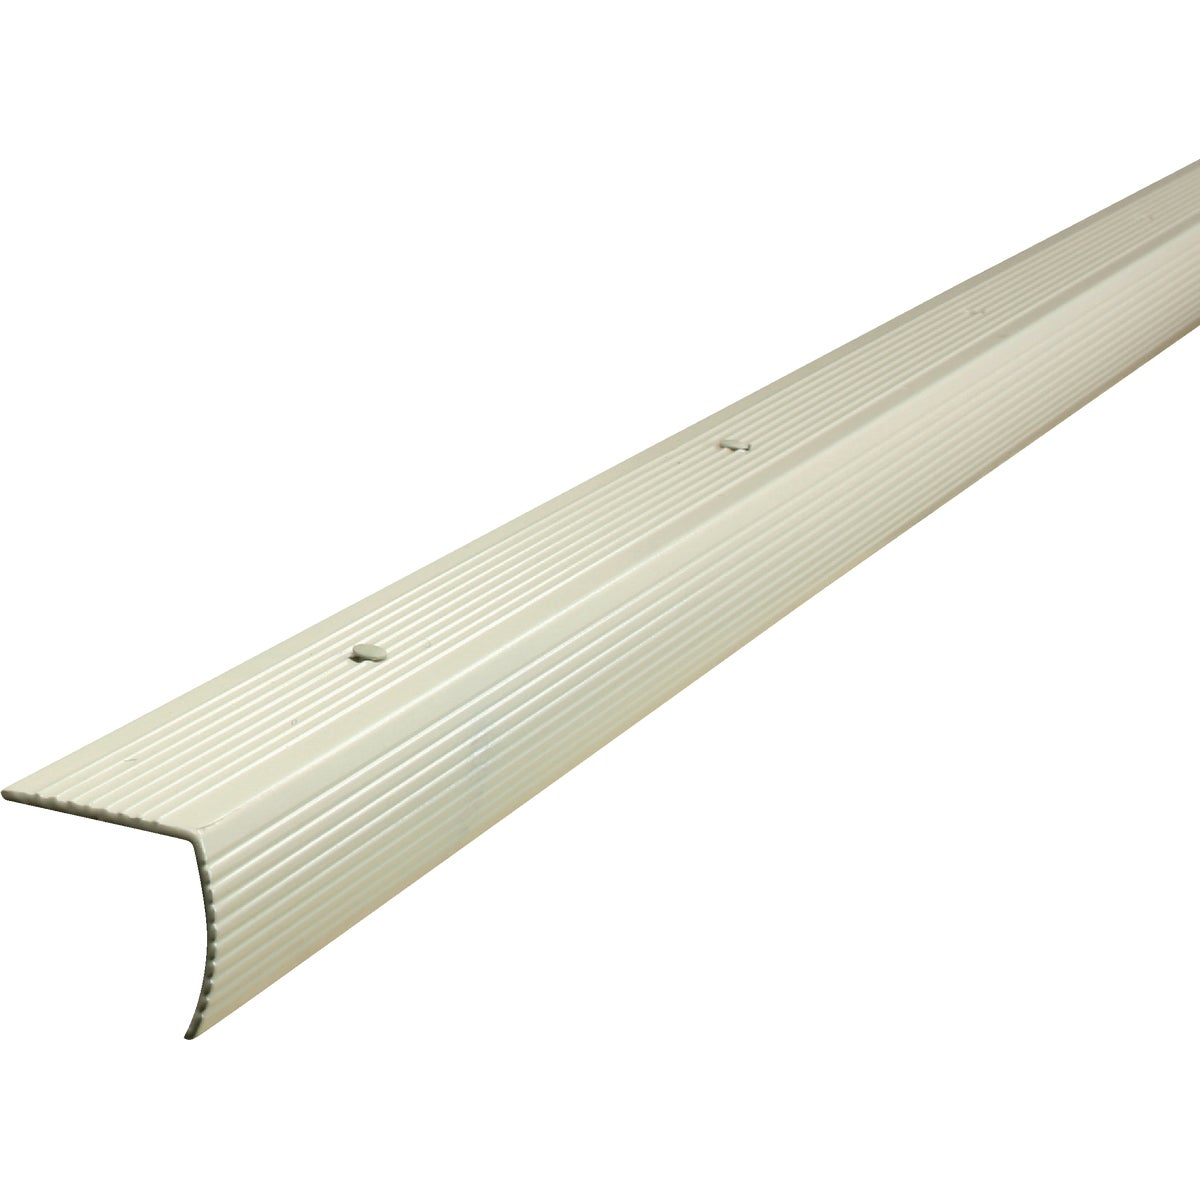 "1-1/8""X3' ALMD EDGING - 74690 by M D Building Prod"